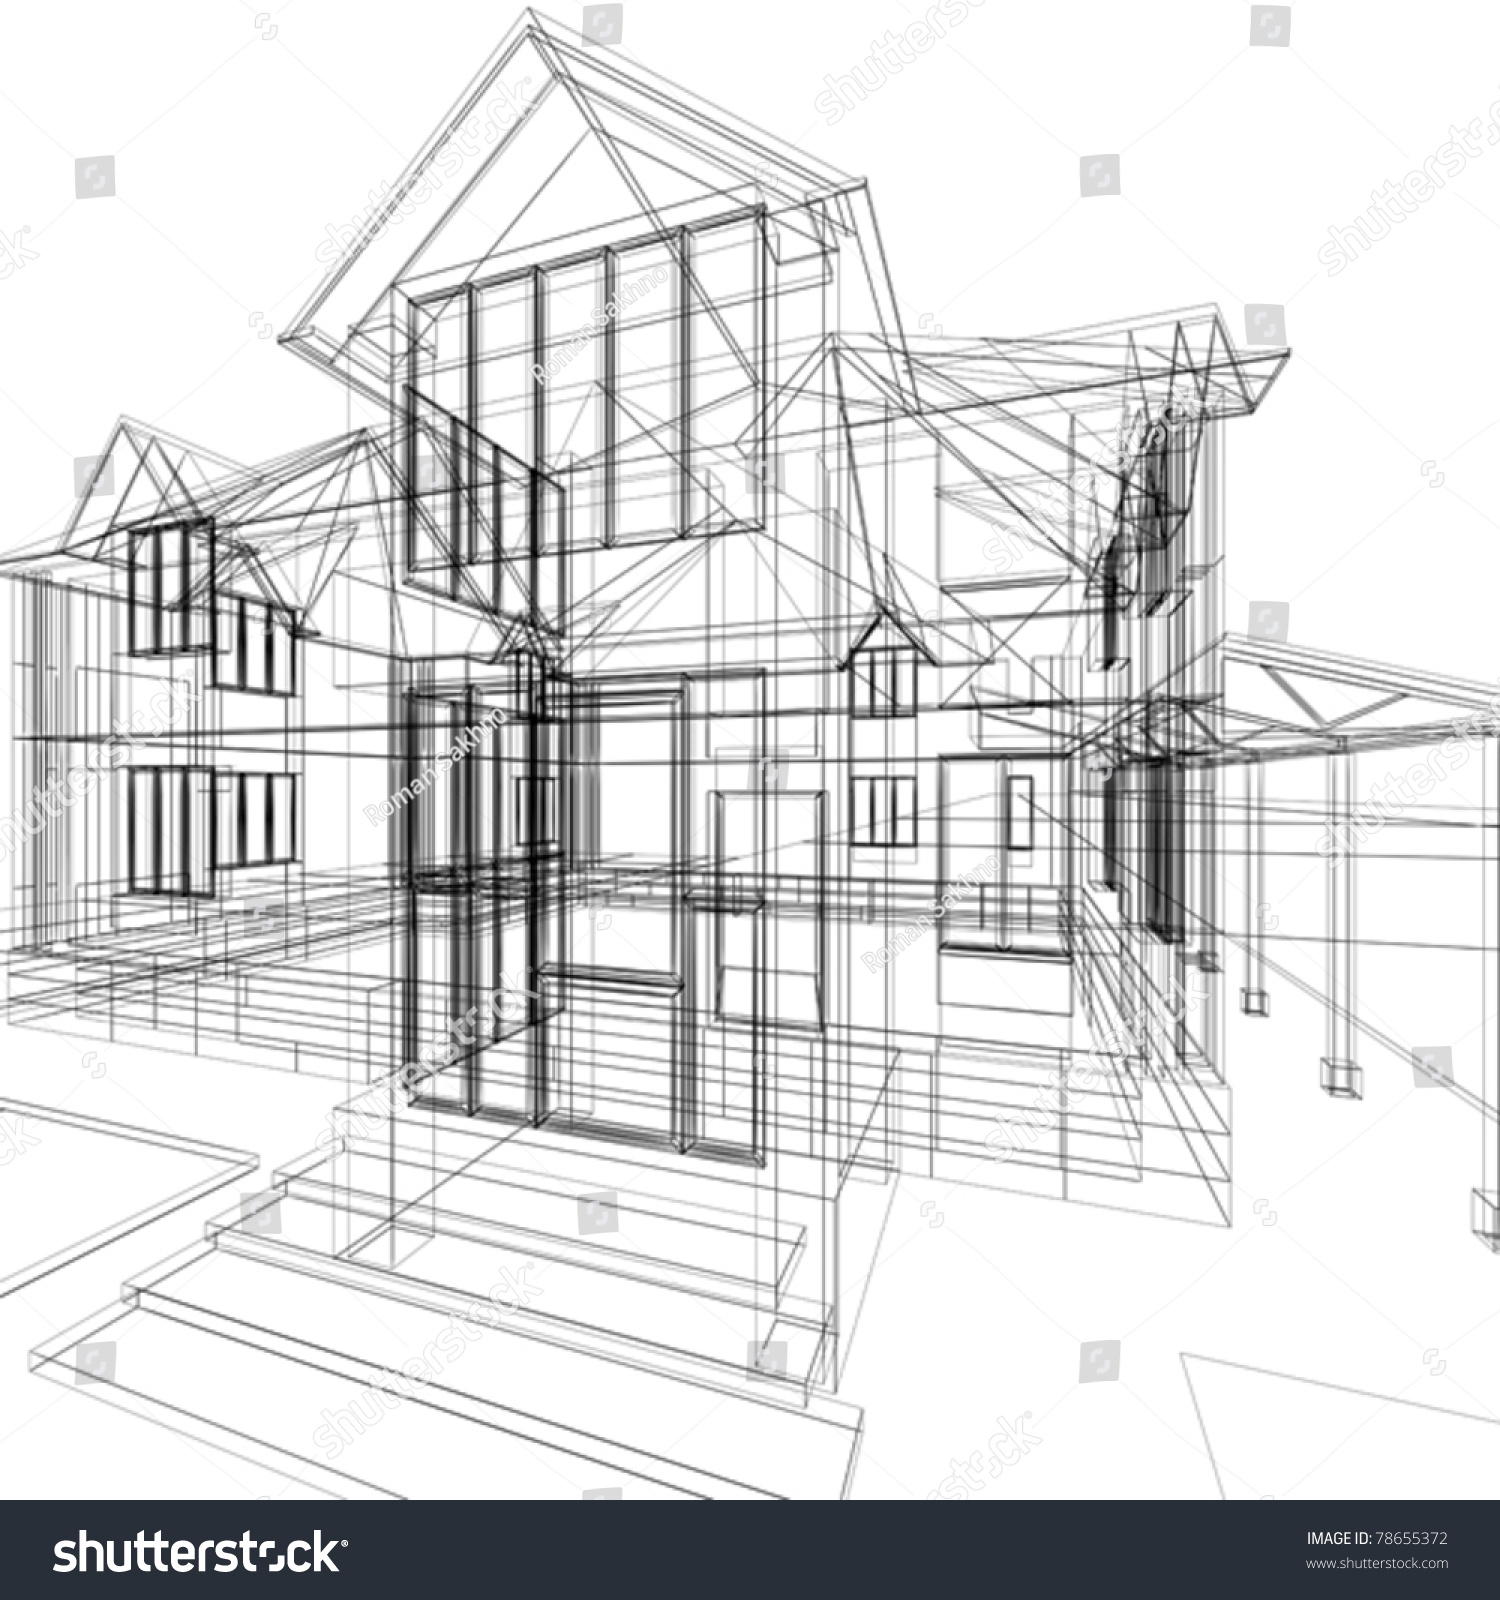 Royalty-free Abstract Sketch Of House. 3d Vector